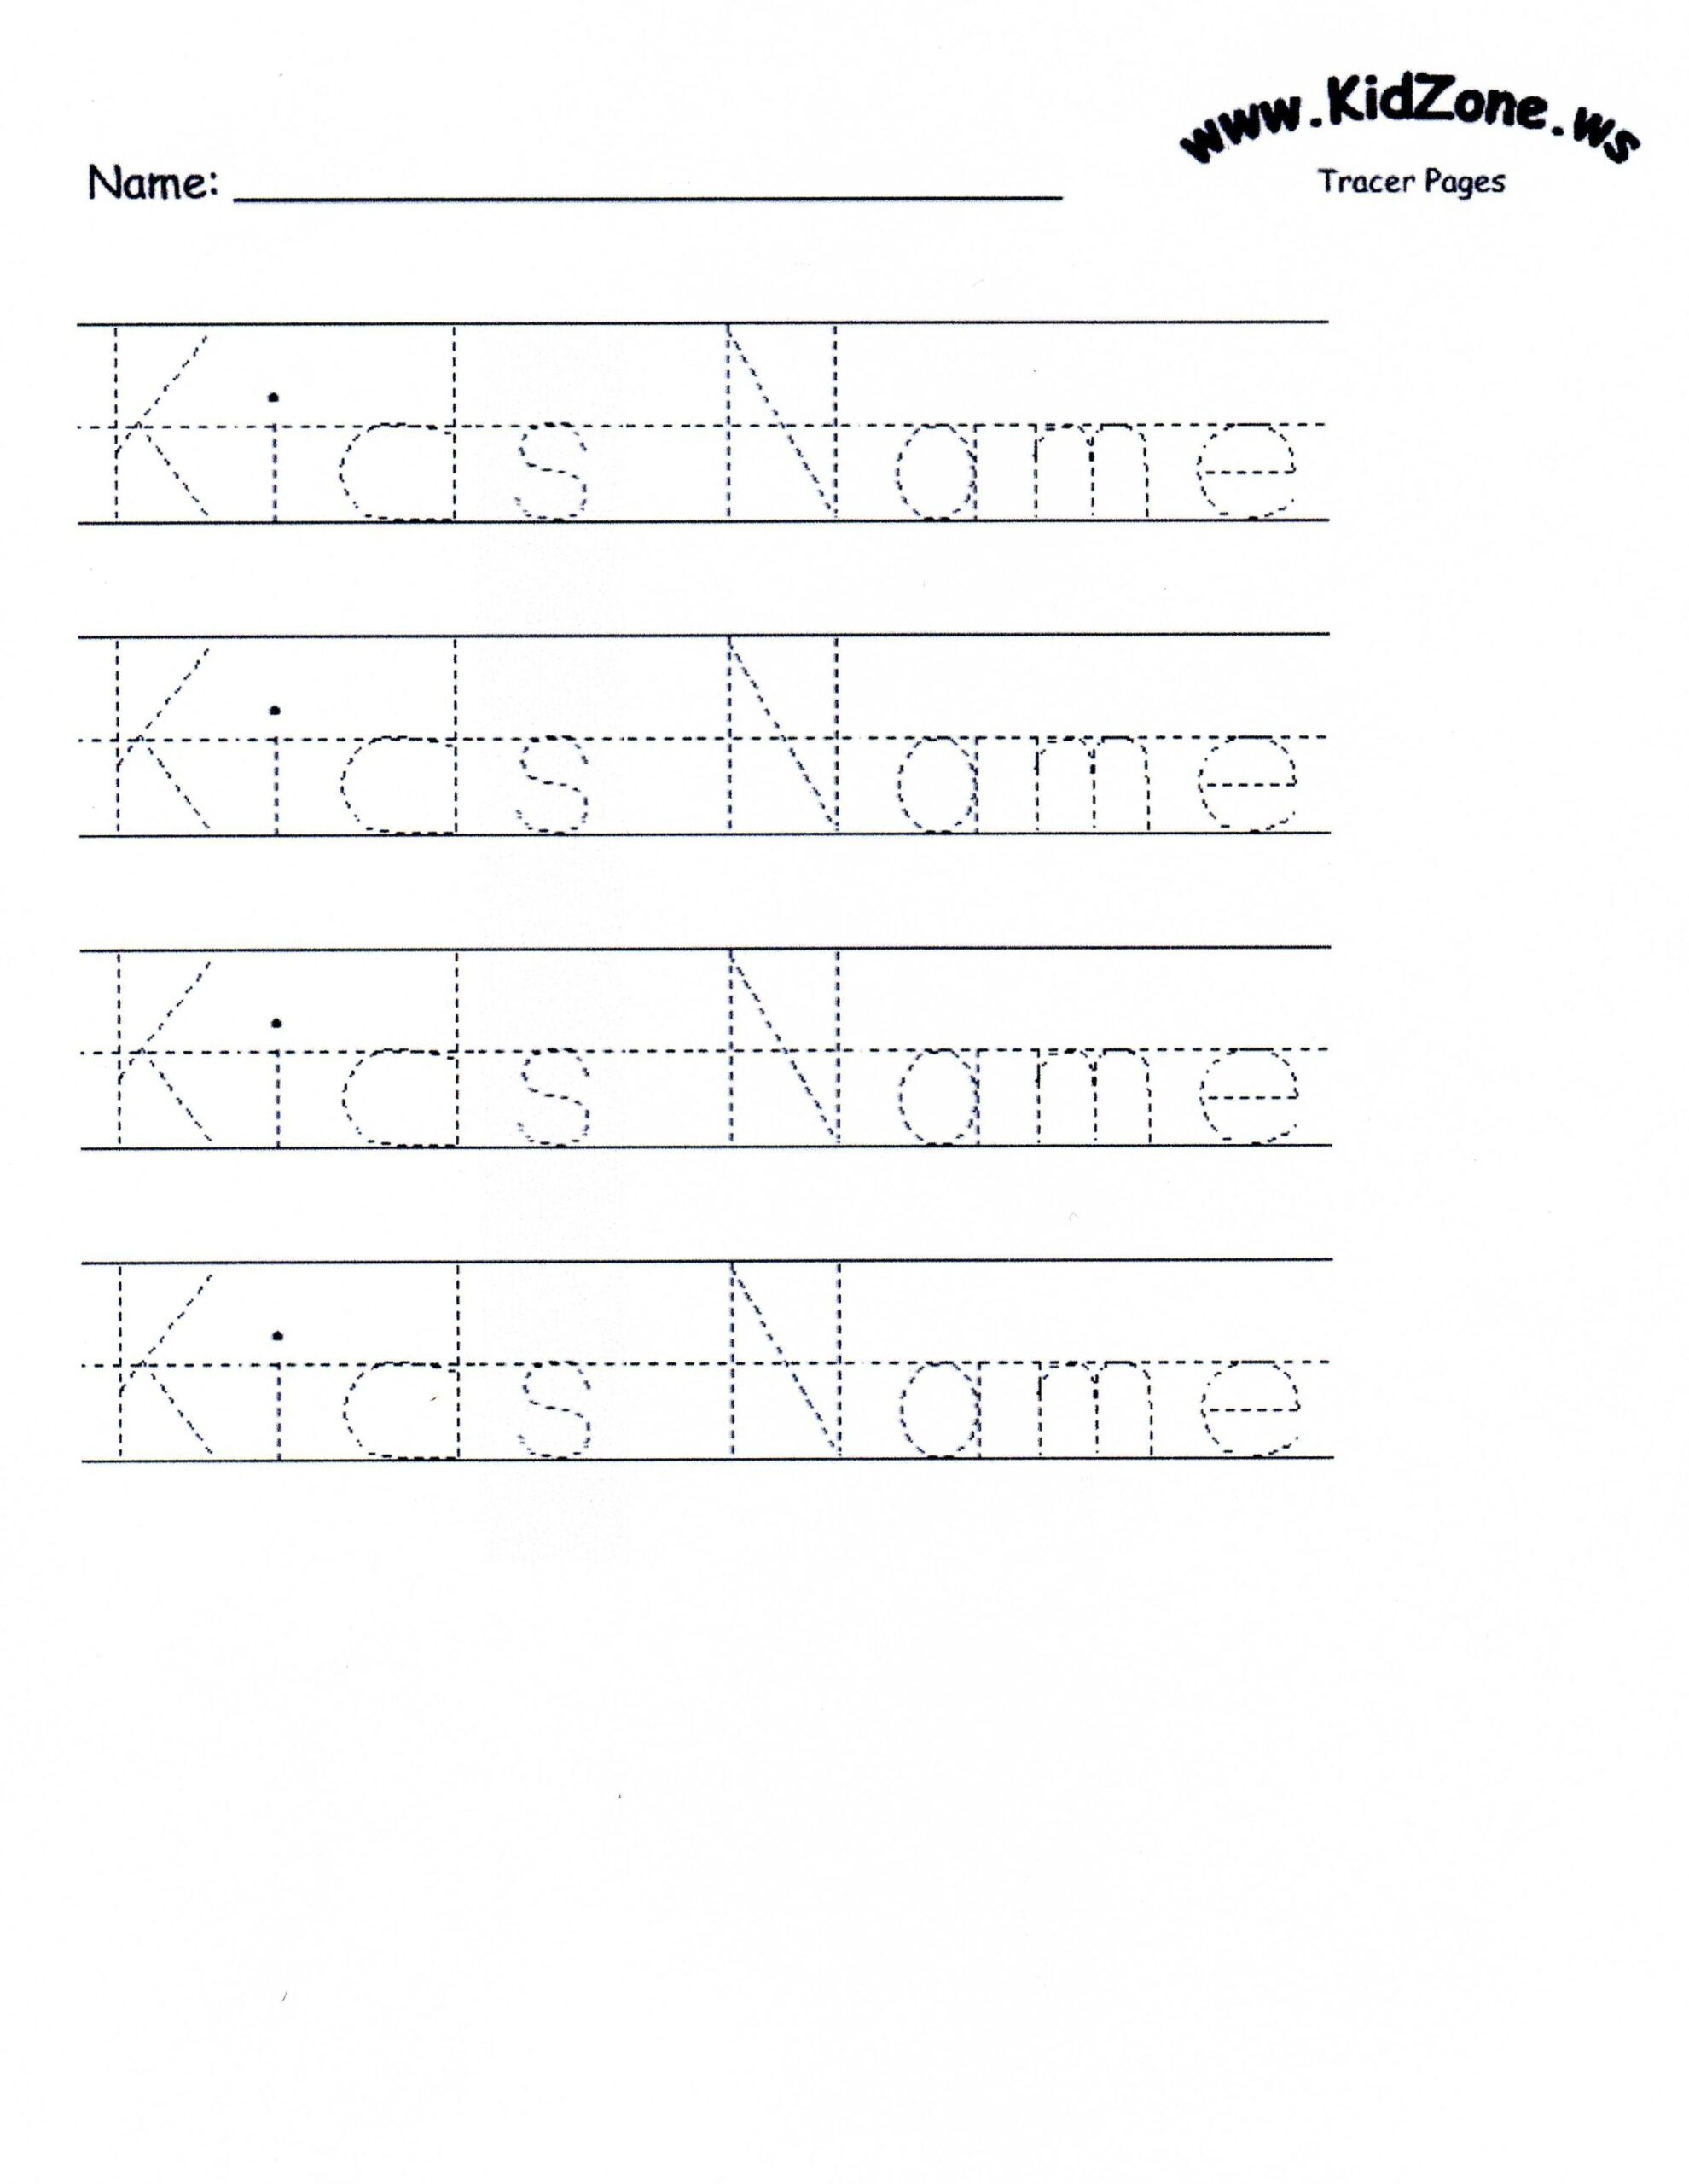 Worksheets : Customizable Printable Letter Pages Name